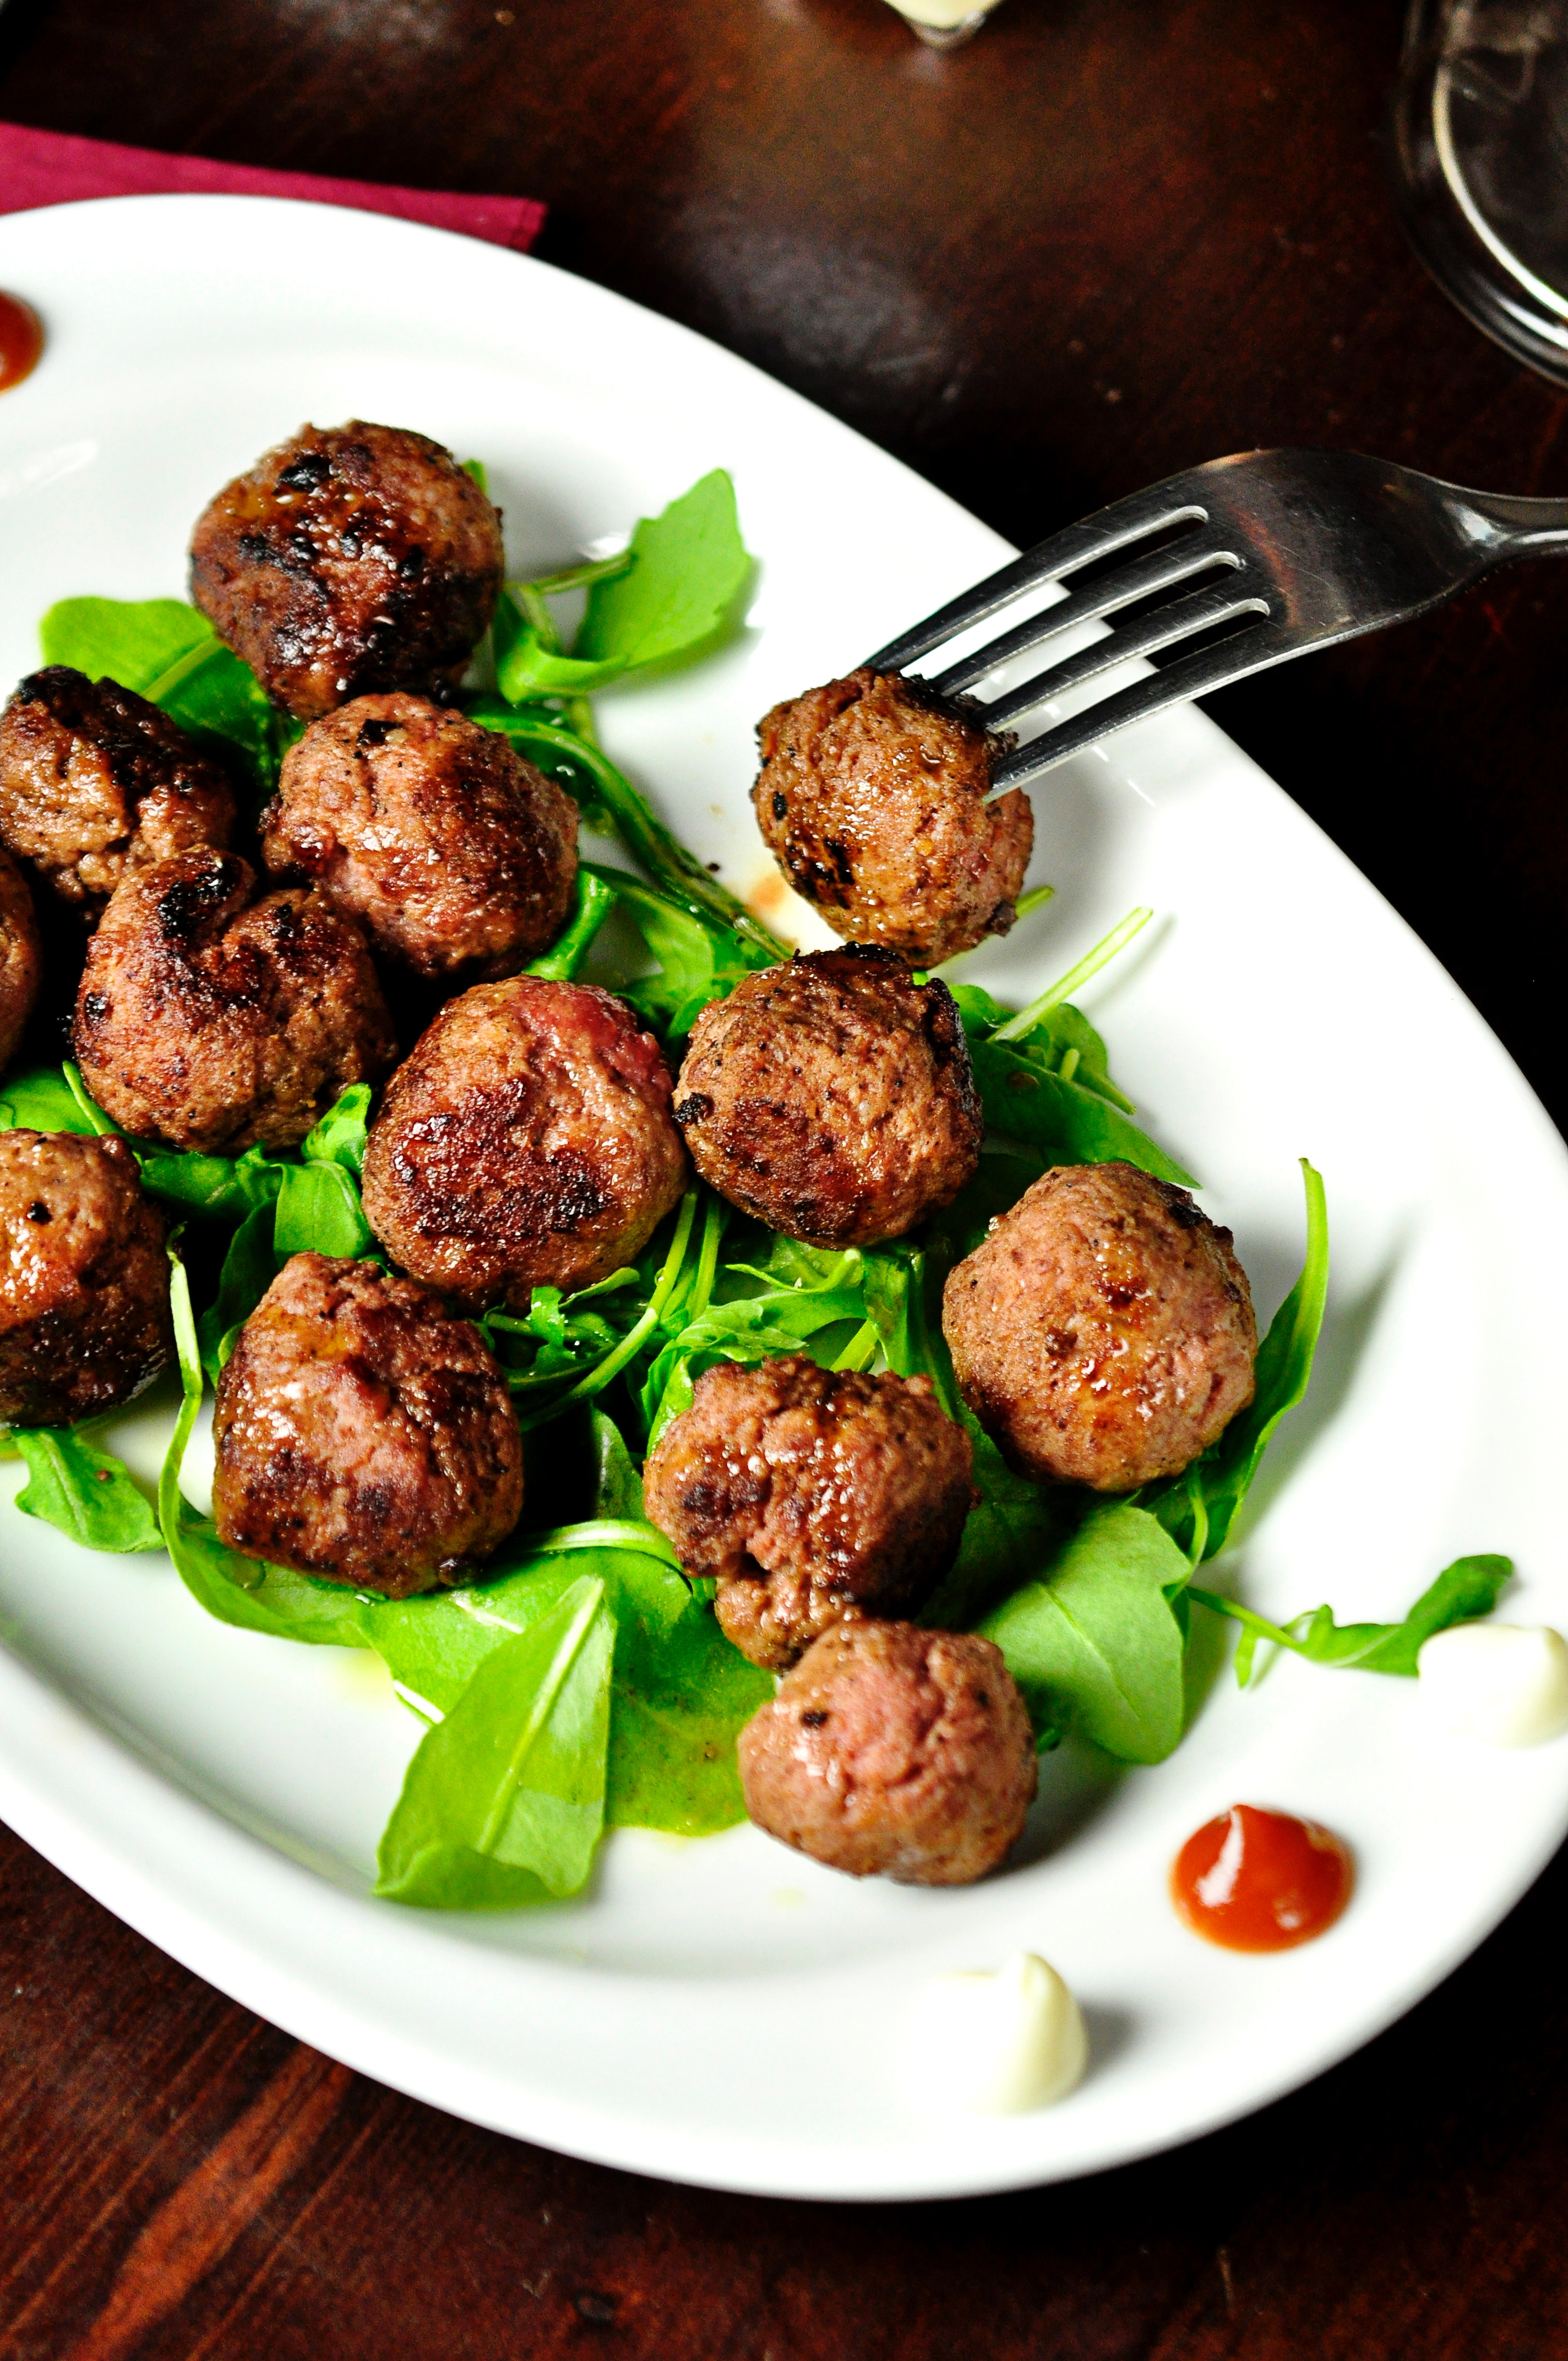 Dealing with Picky Eaters with Meatballs